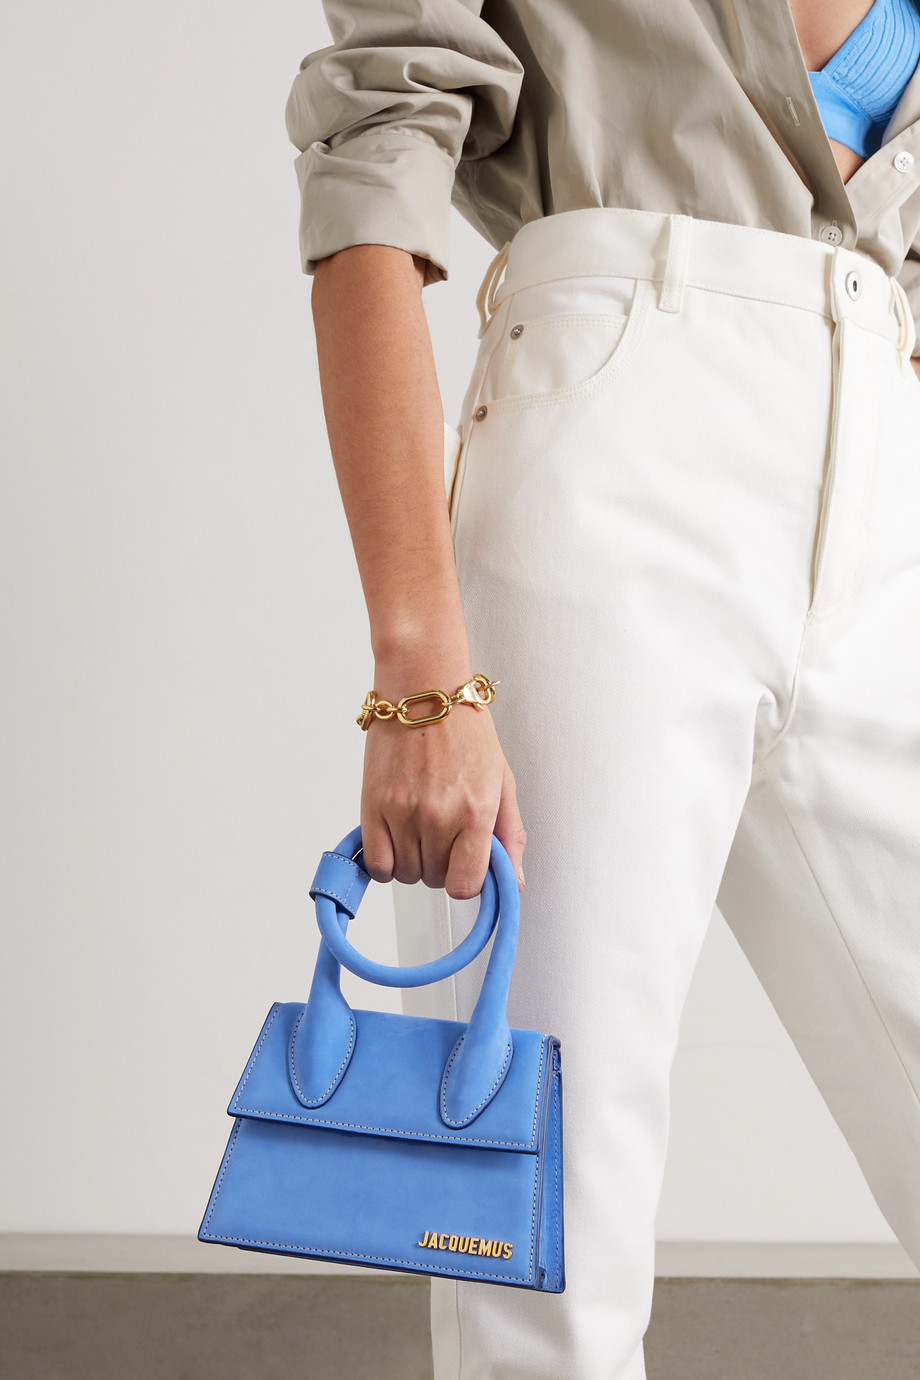 JACQUEMUS Le Chiquito Noeud small nubuck shoulder bag